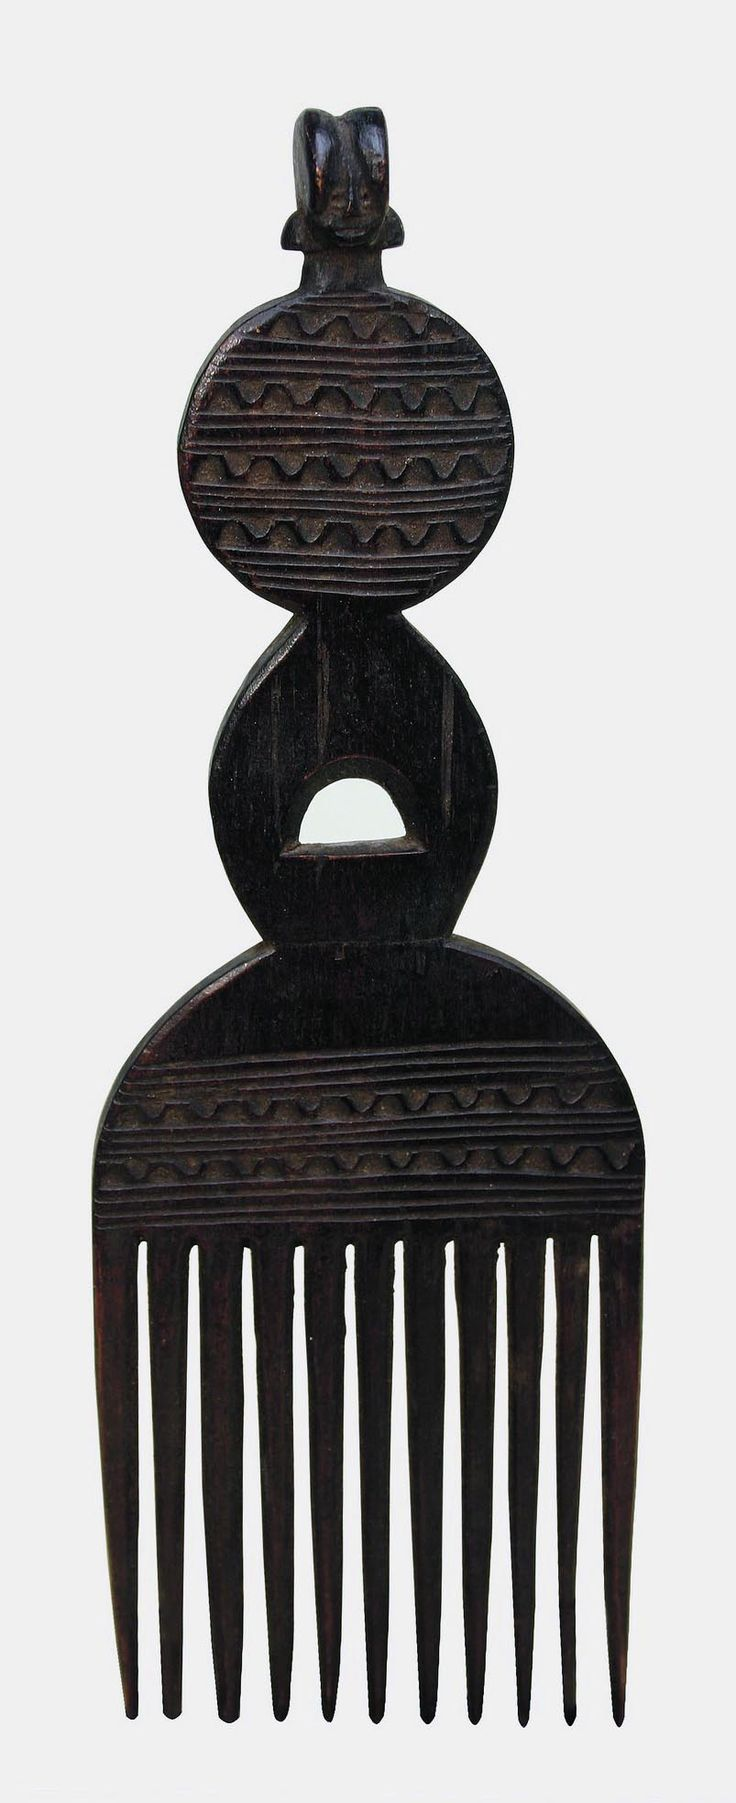 Africa | Comb from the Kwere people of Tanzania | Wood. BelAfrique your personal travel planner - www.BelAfrique.com